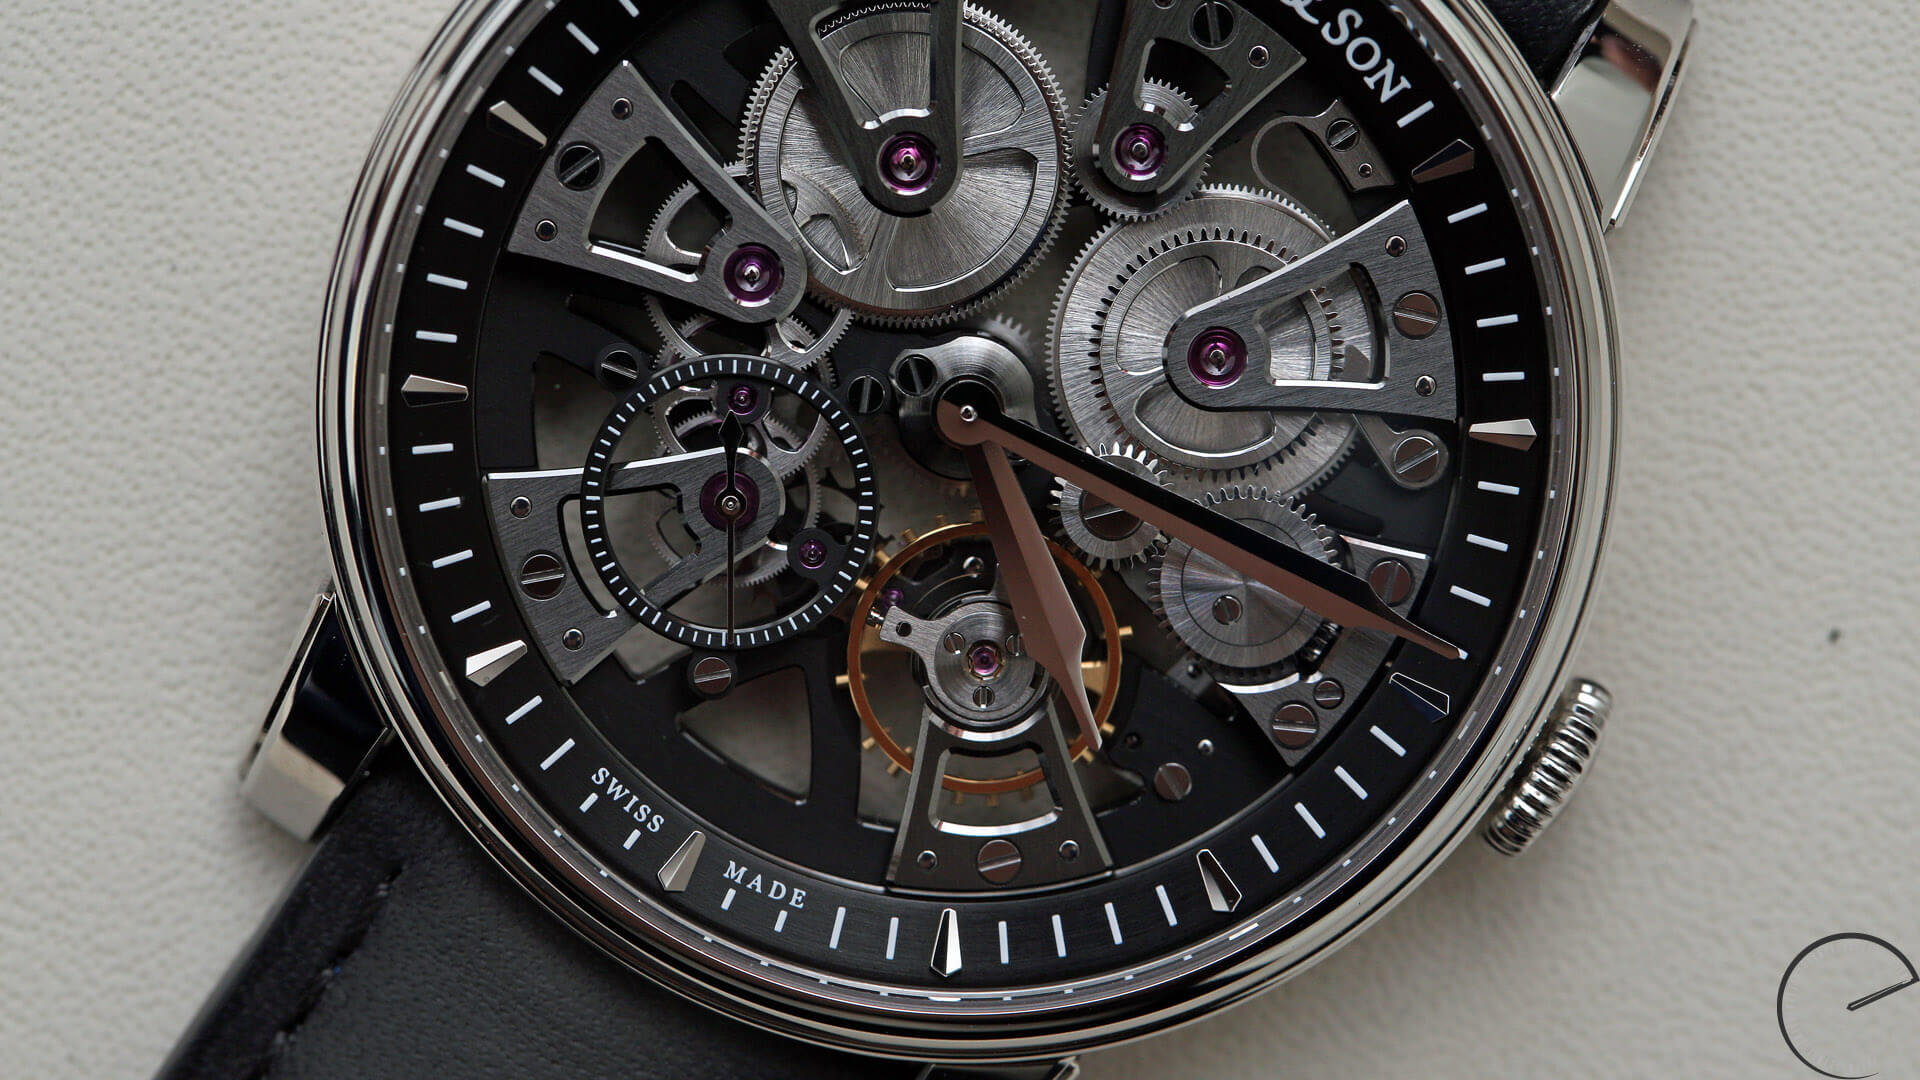 Arnold_and_Son_Nebula_closeup - ESCAPEMENT watch blog - reviews by Angus Davies